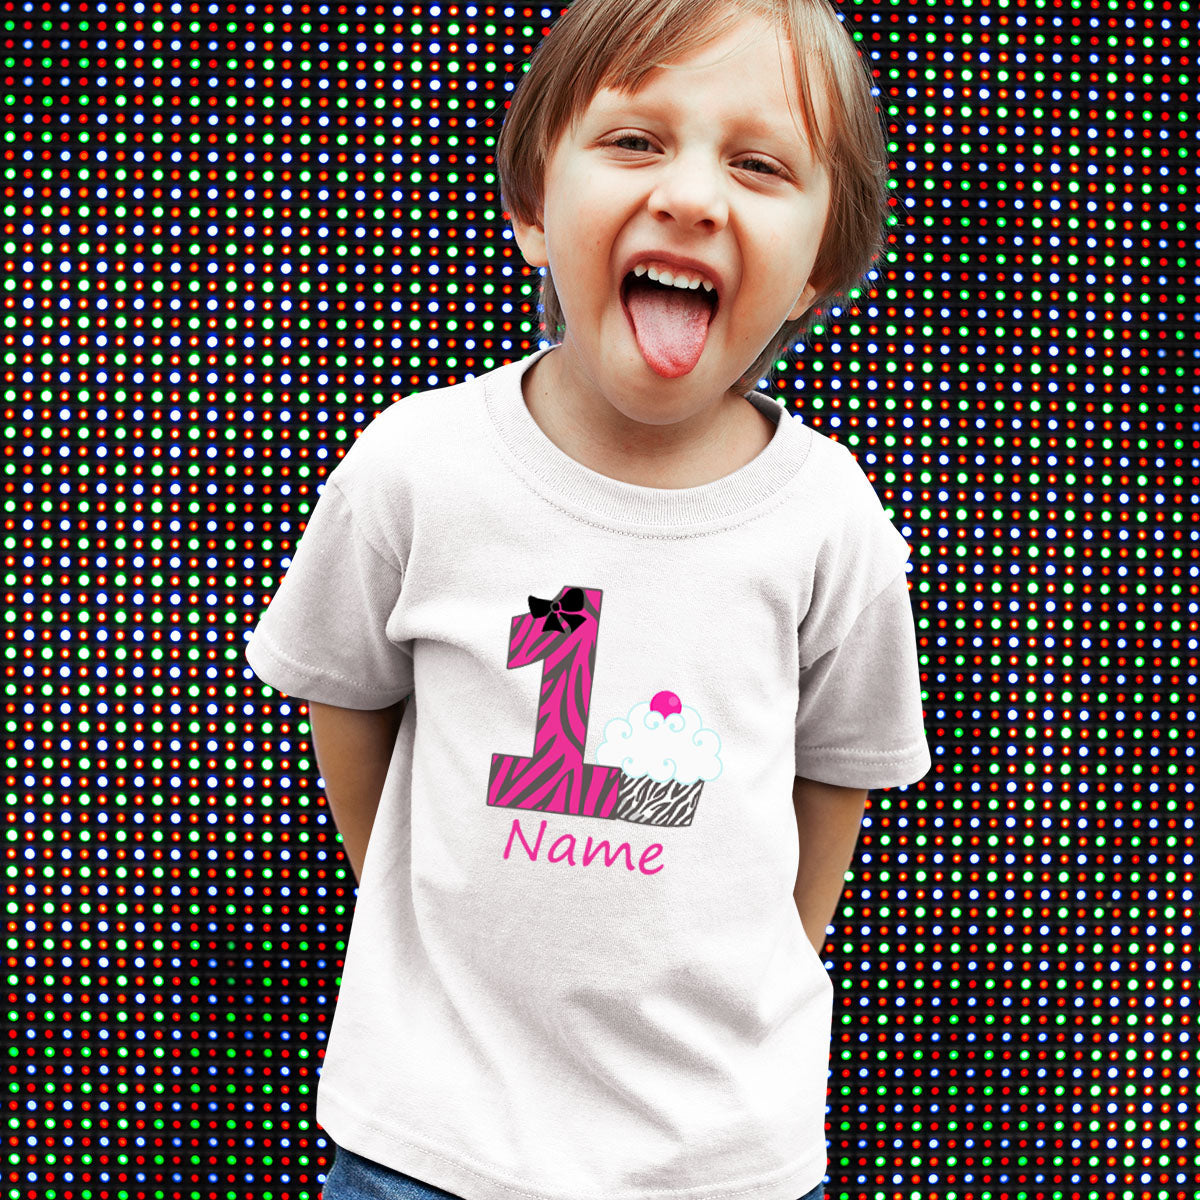 Sprinklecart Personalized Cup Cake Birthday Dress | Ideal First Birthday T Shirt